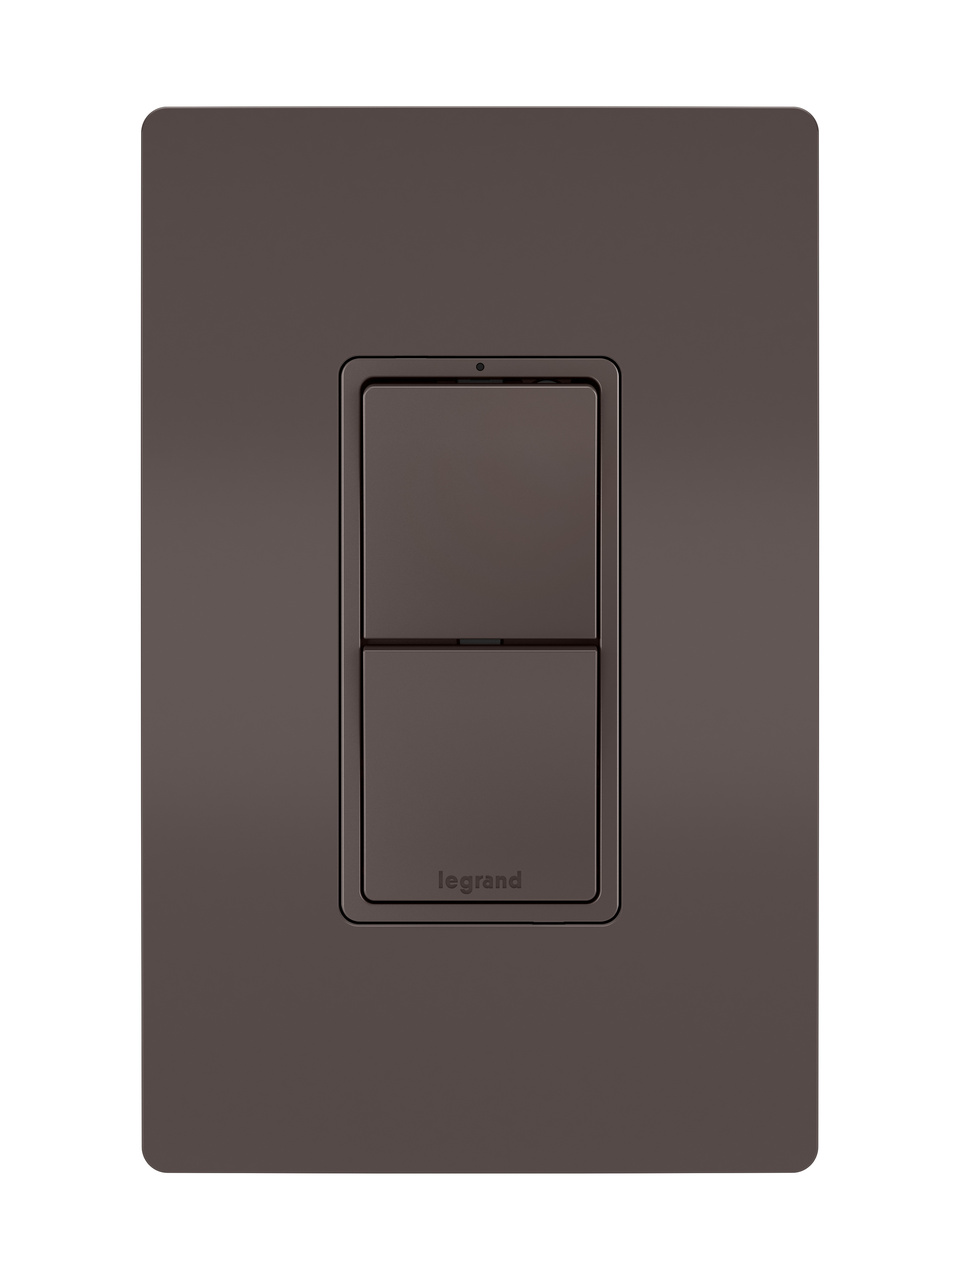 Two Single Pole/3-Way Switches, Brown